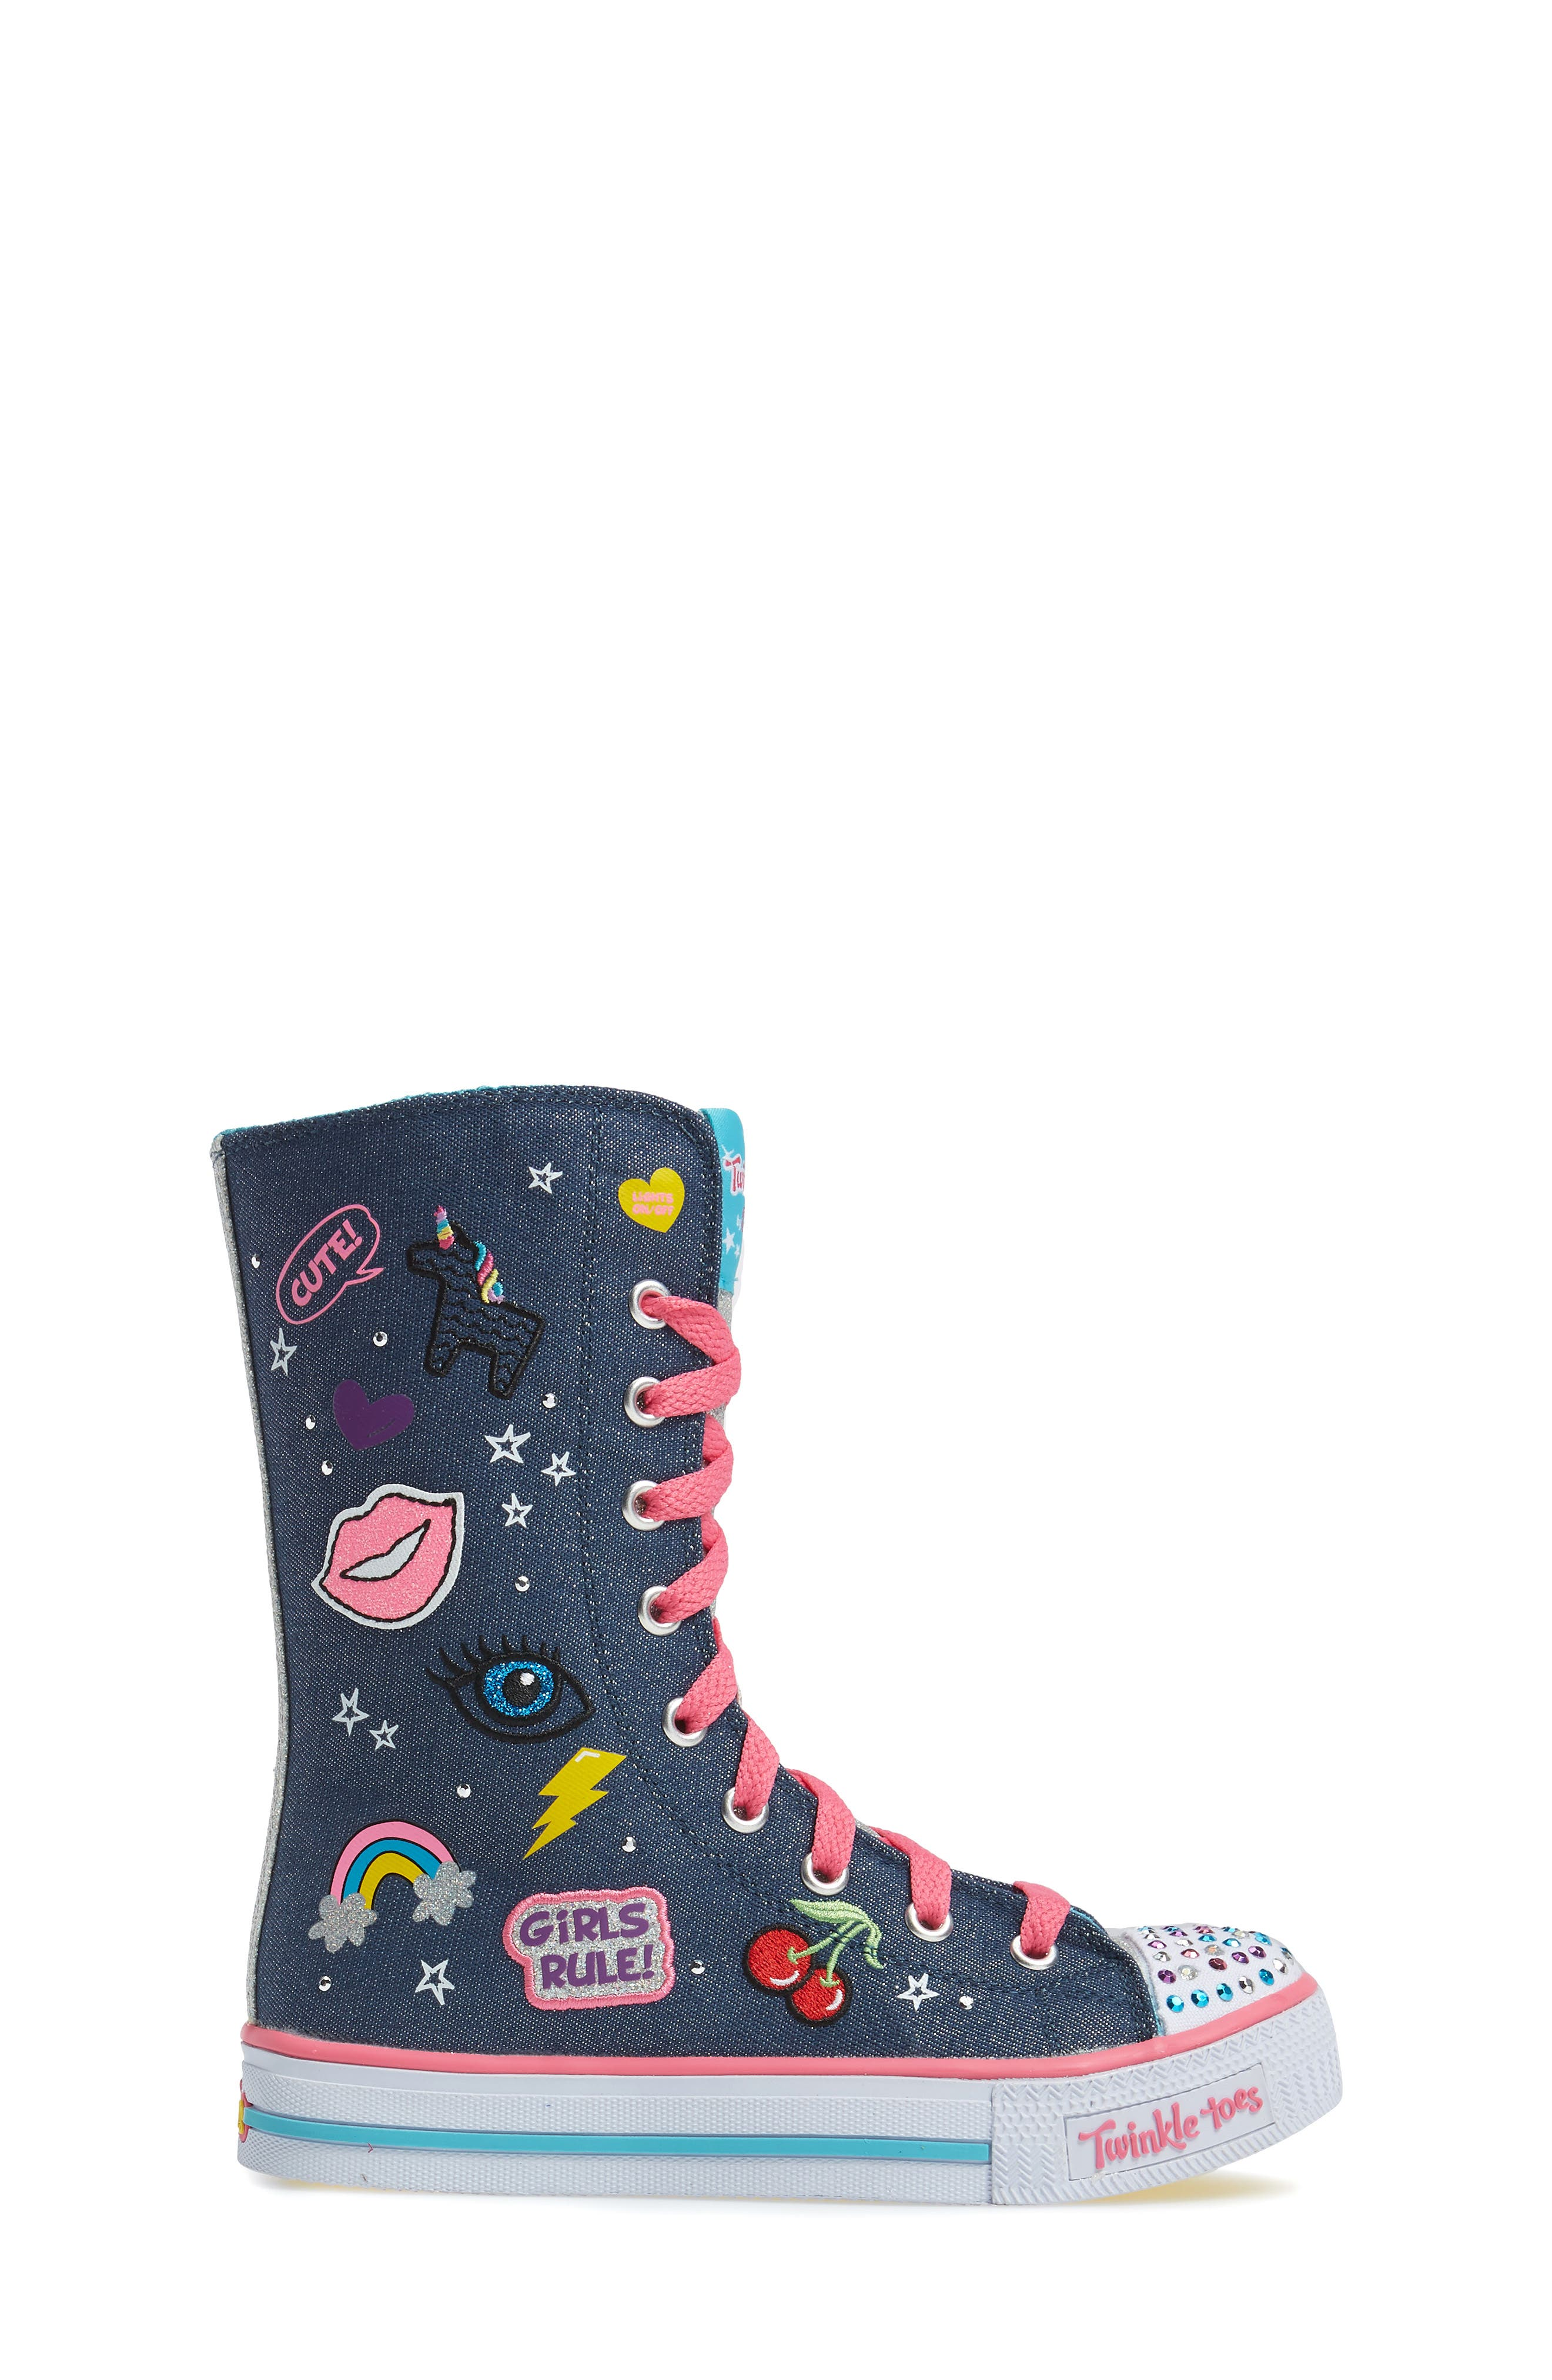 Twinkle Toes Shuffles Ultra High Top Sneaker,                             Alternate thumbnail 3, color,                             468